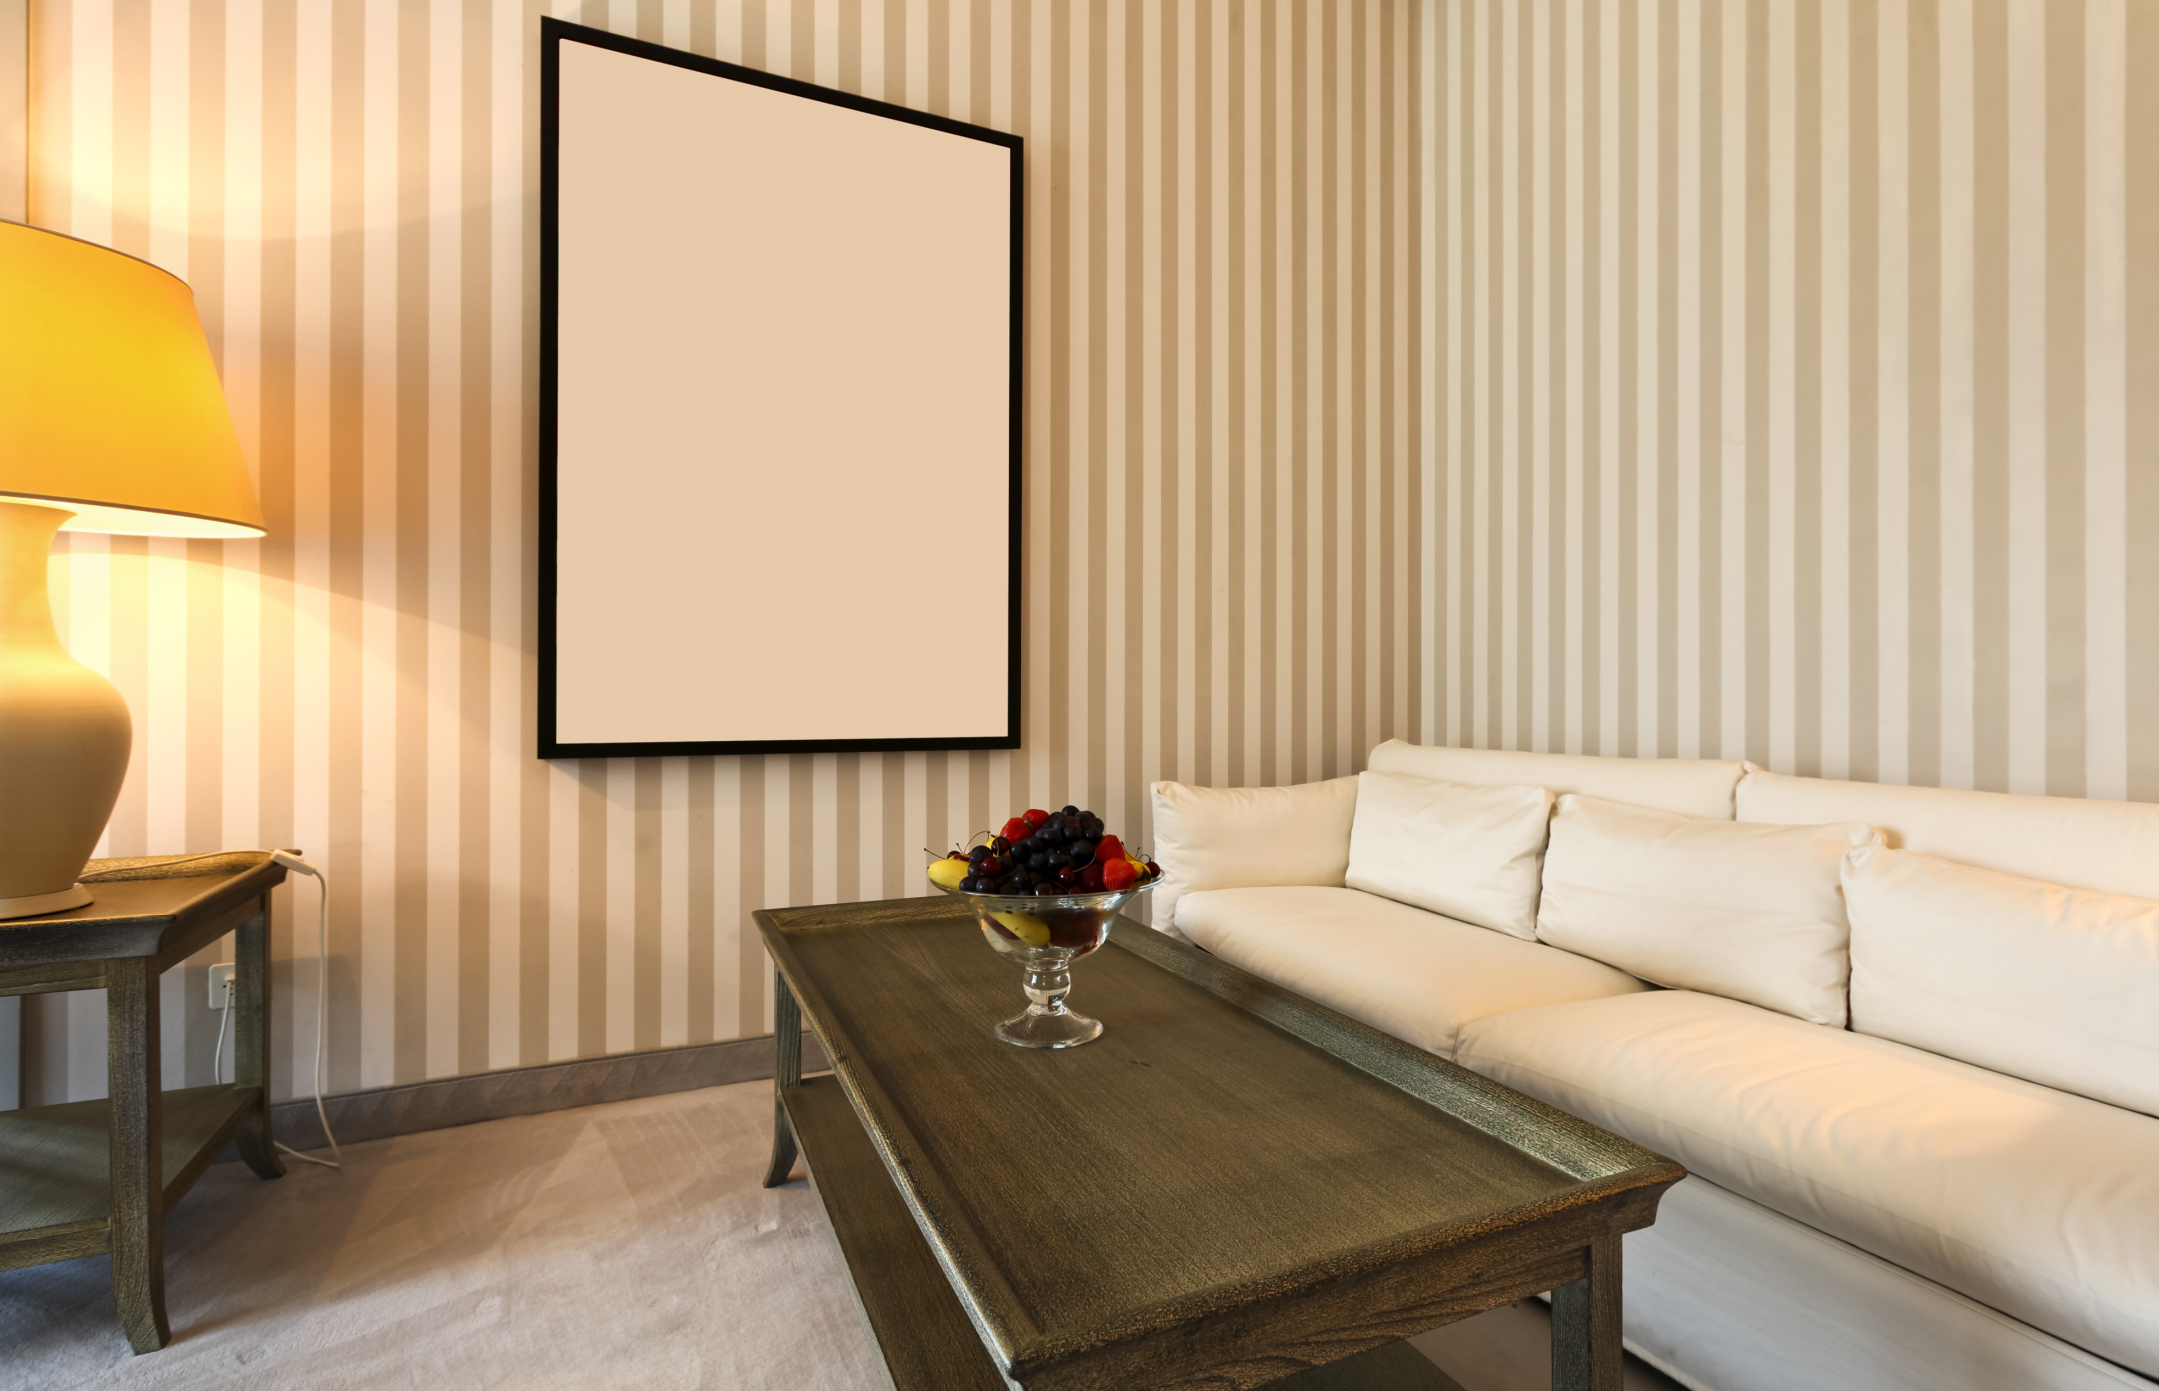 Interior Painting In Rooms Design Wallpaper Ideas For 557716 Hd Wallpaper Backgrounds Download